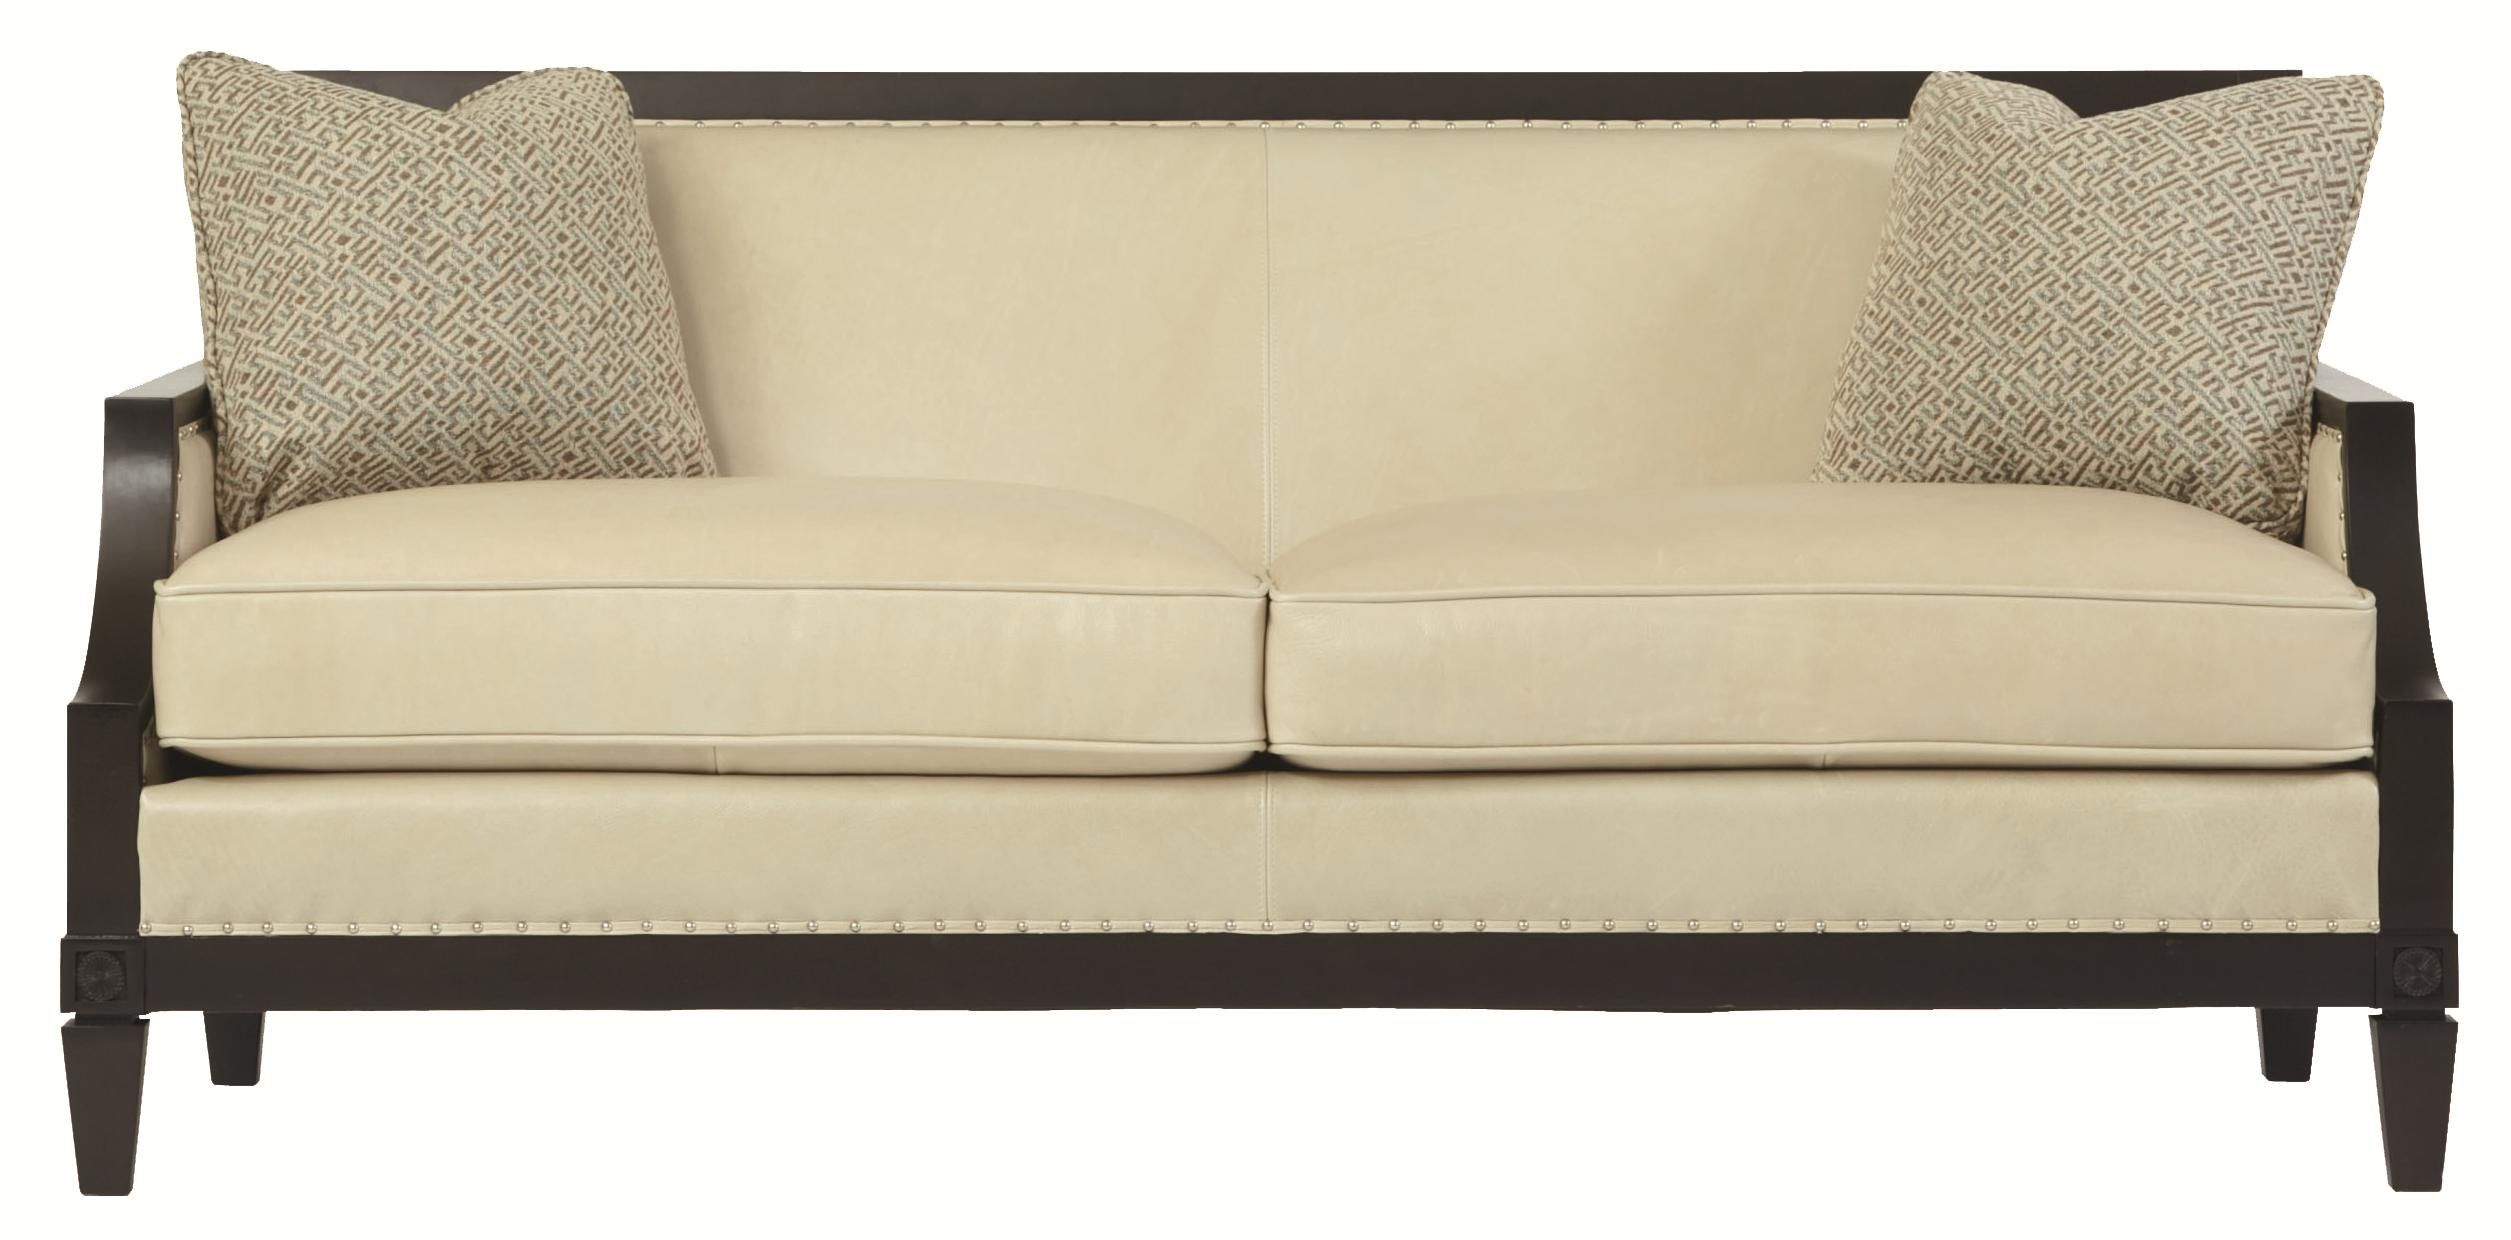 Interiors morris sofa with decorative nail head trim by - Cheap living room furniture toronto ...